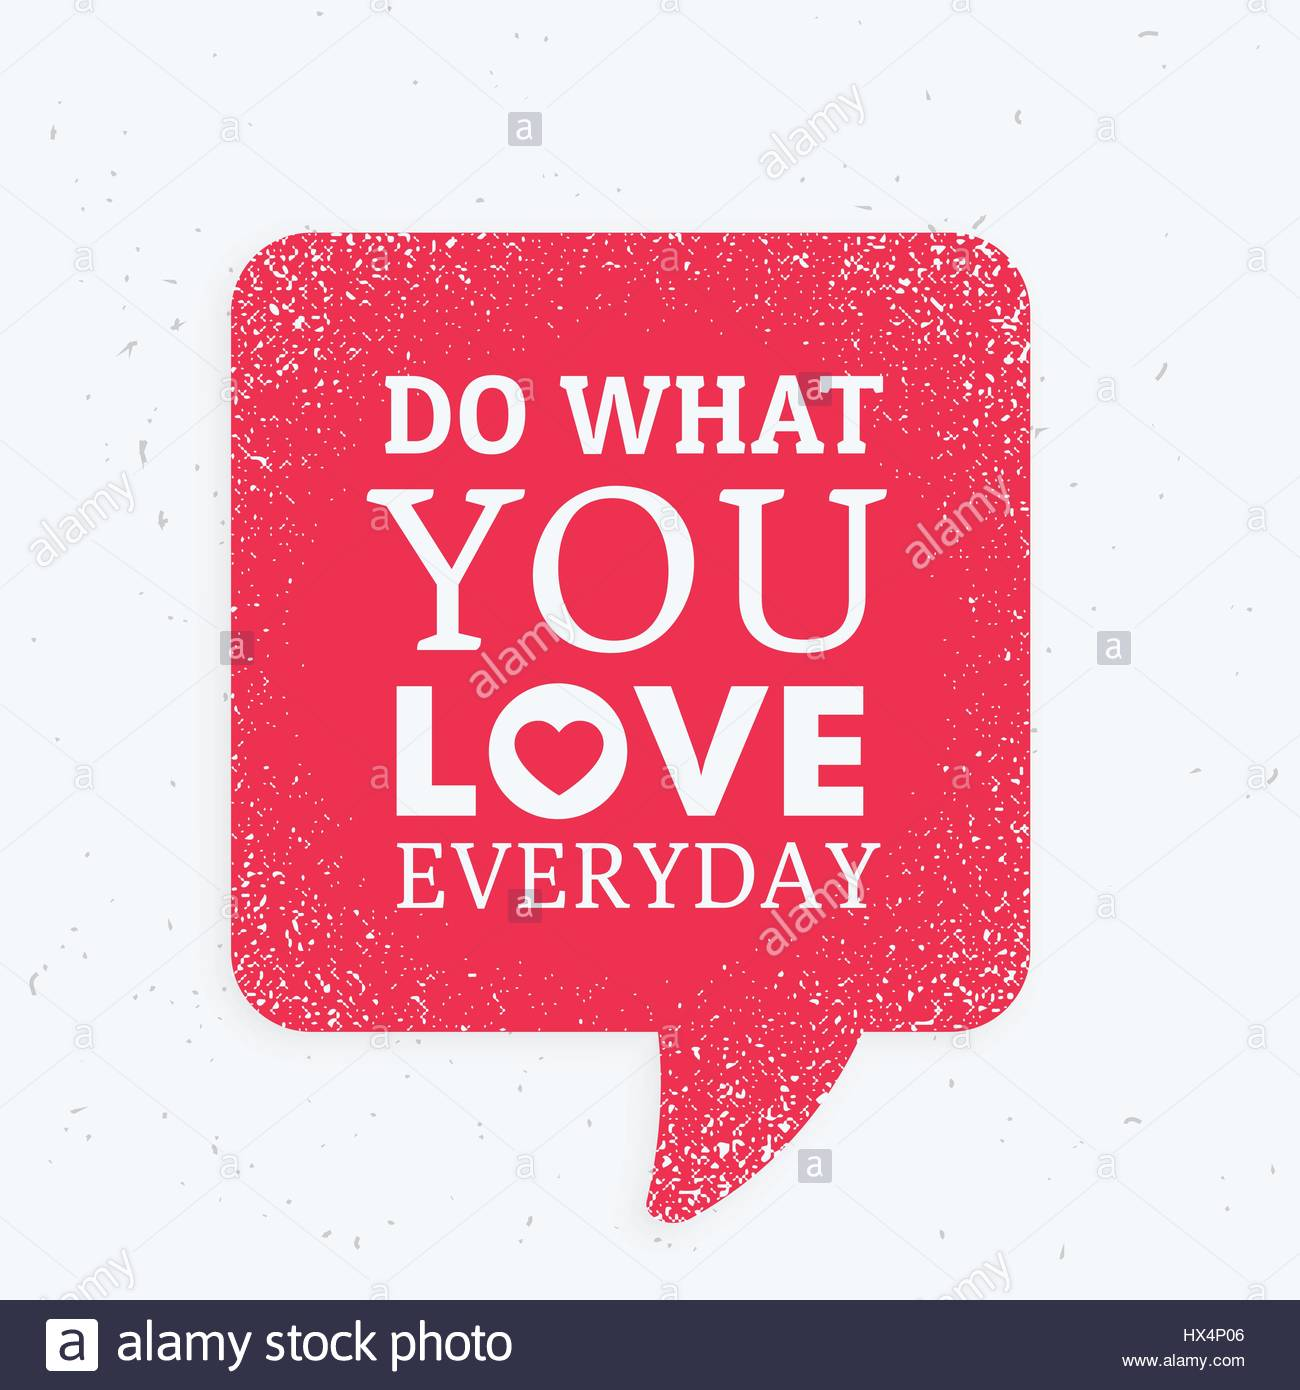 Do What You Love Everyday Inspirational Quotation Mark With Red